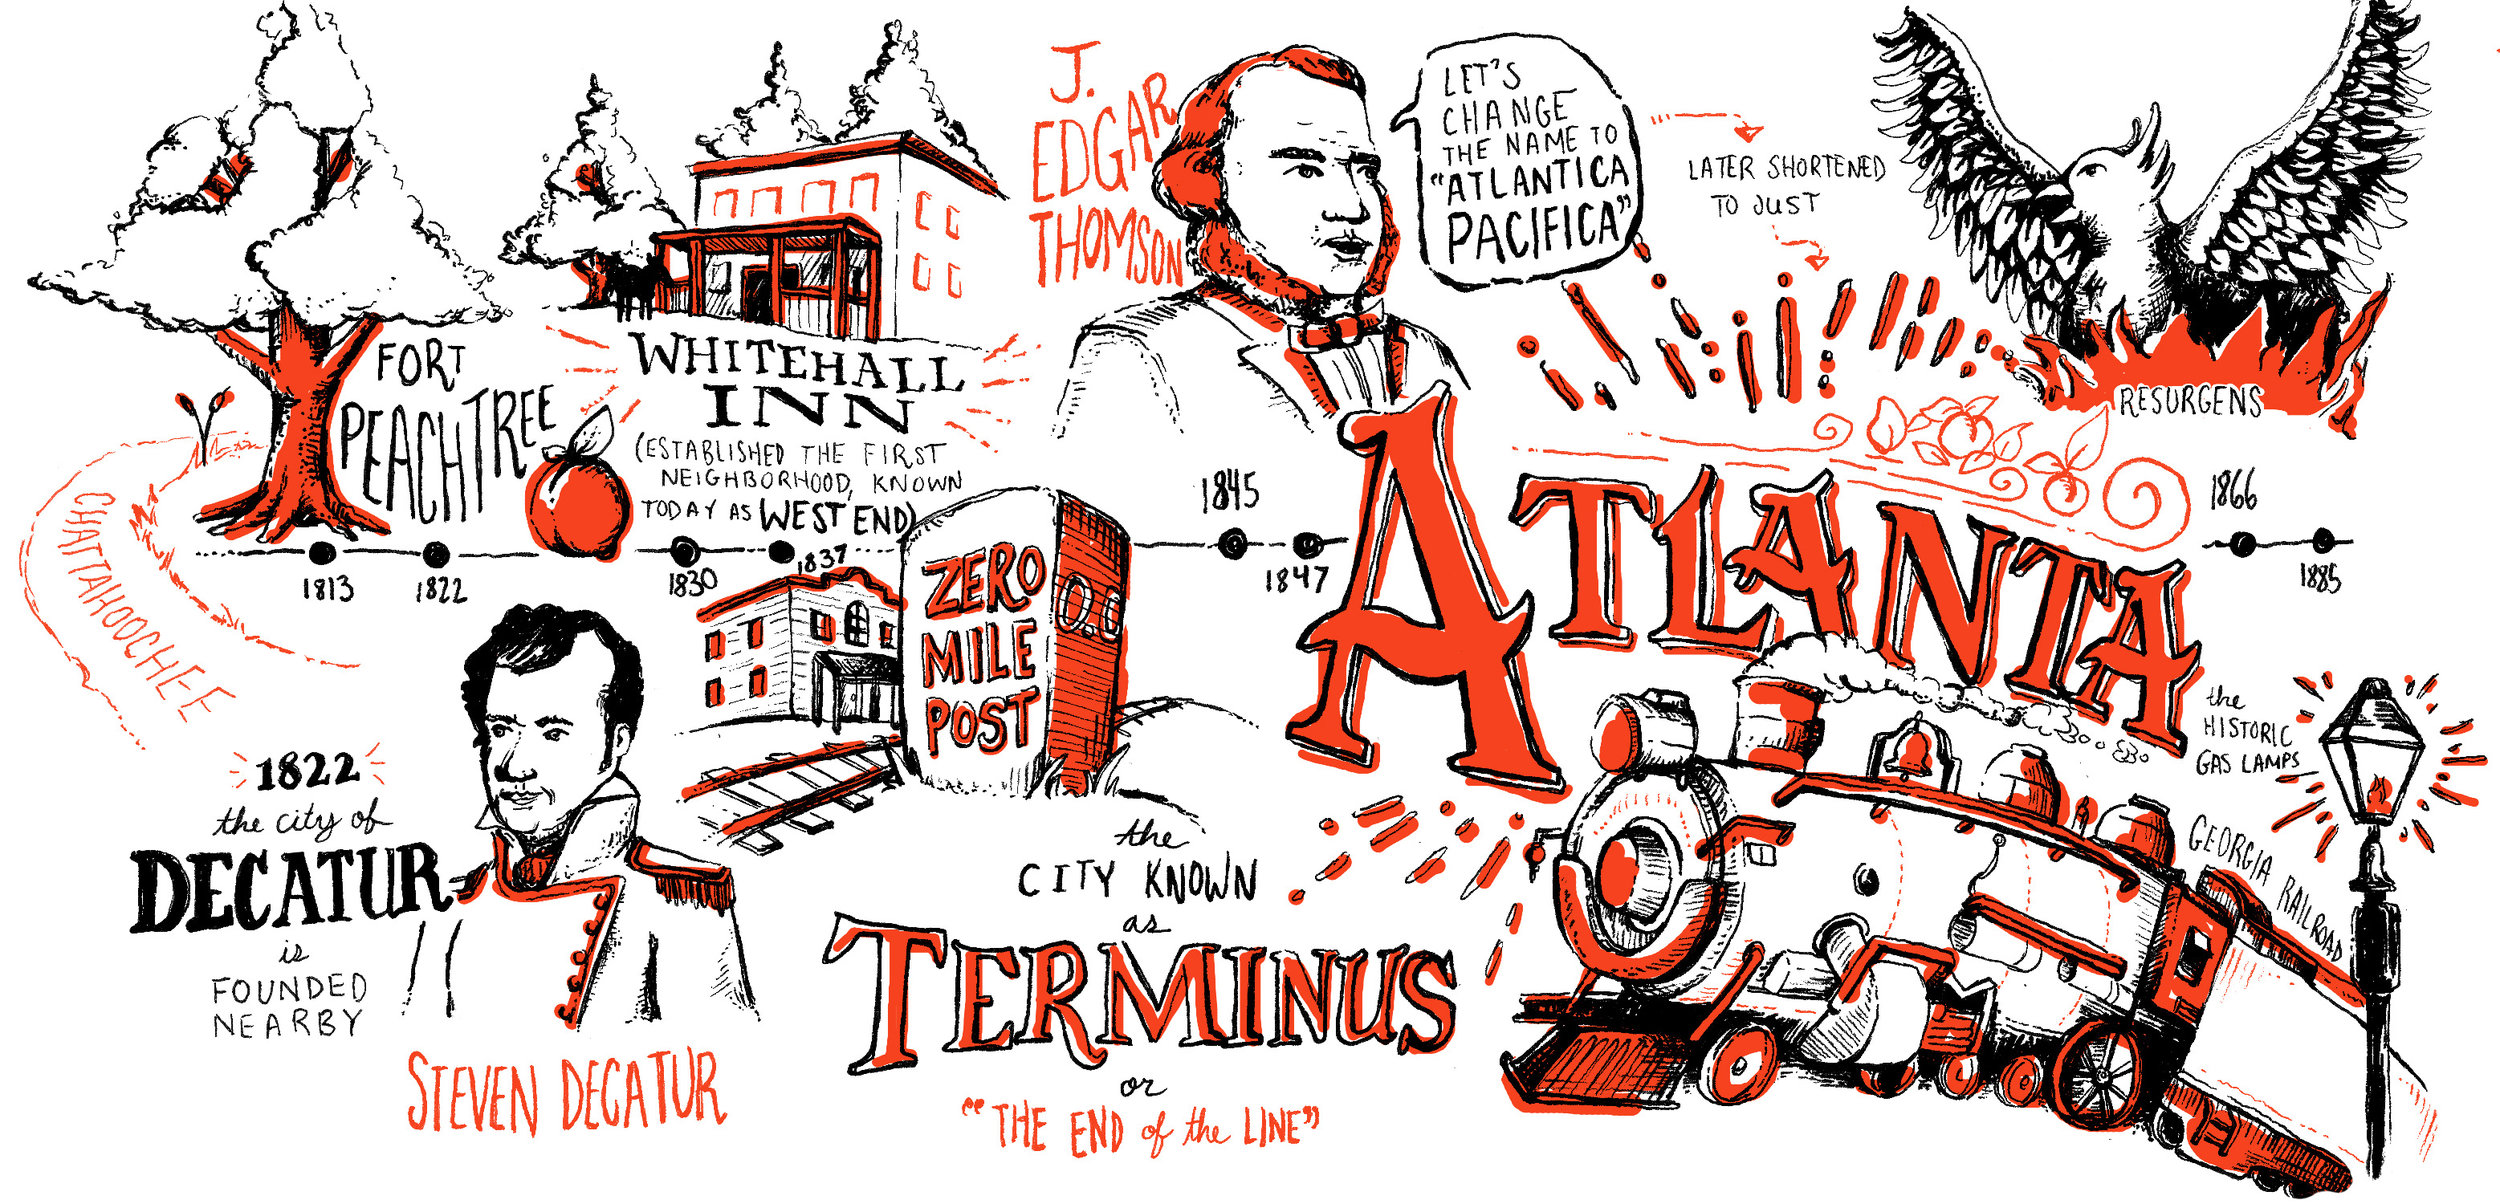 A piece of the Neenah Atlanta illustrated timeline, drawn by Russell Shaw, with two color black and red art. Shows the founding of Fort Peachtree, the city of Decatur, Whitehall Inn, the Zero Mile Post, the name Terminus, the trains, and the Resurgens Phoenix.